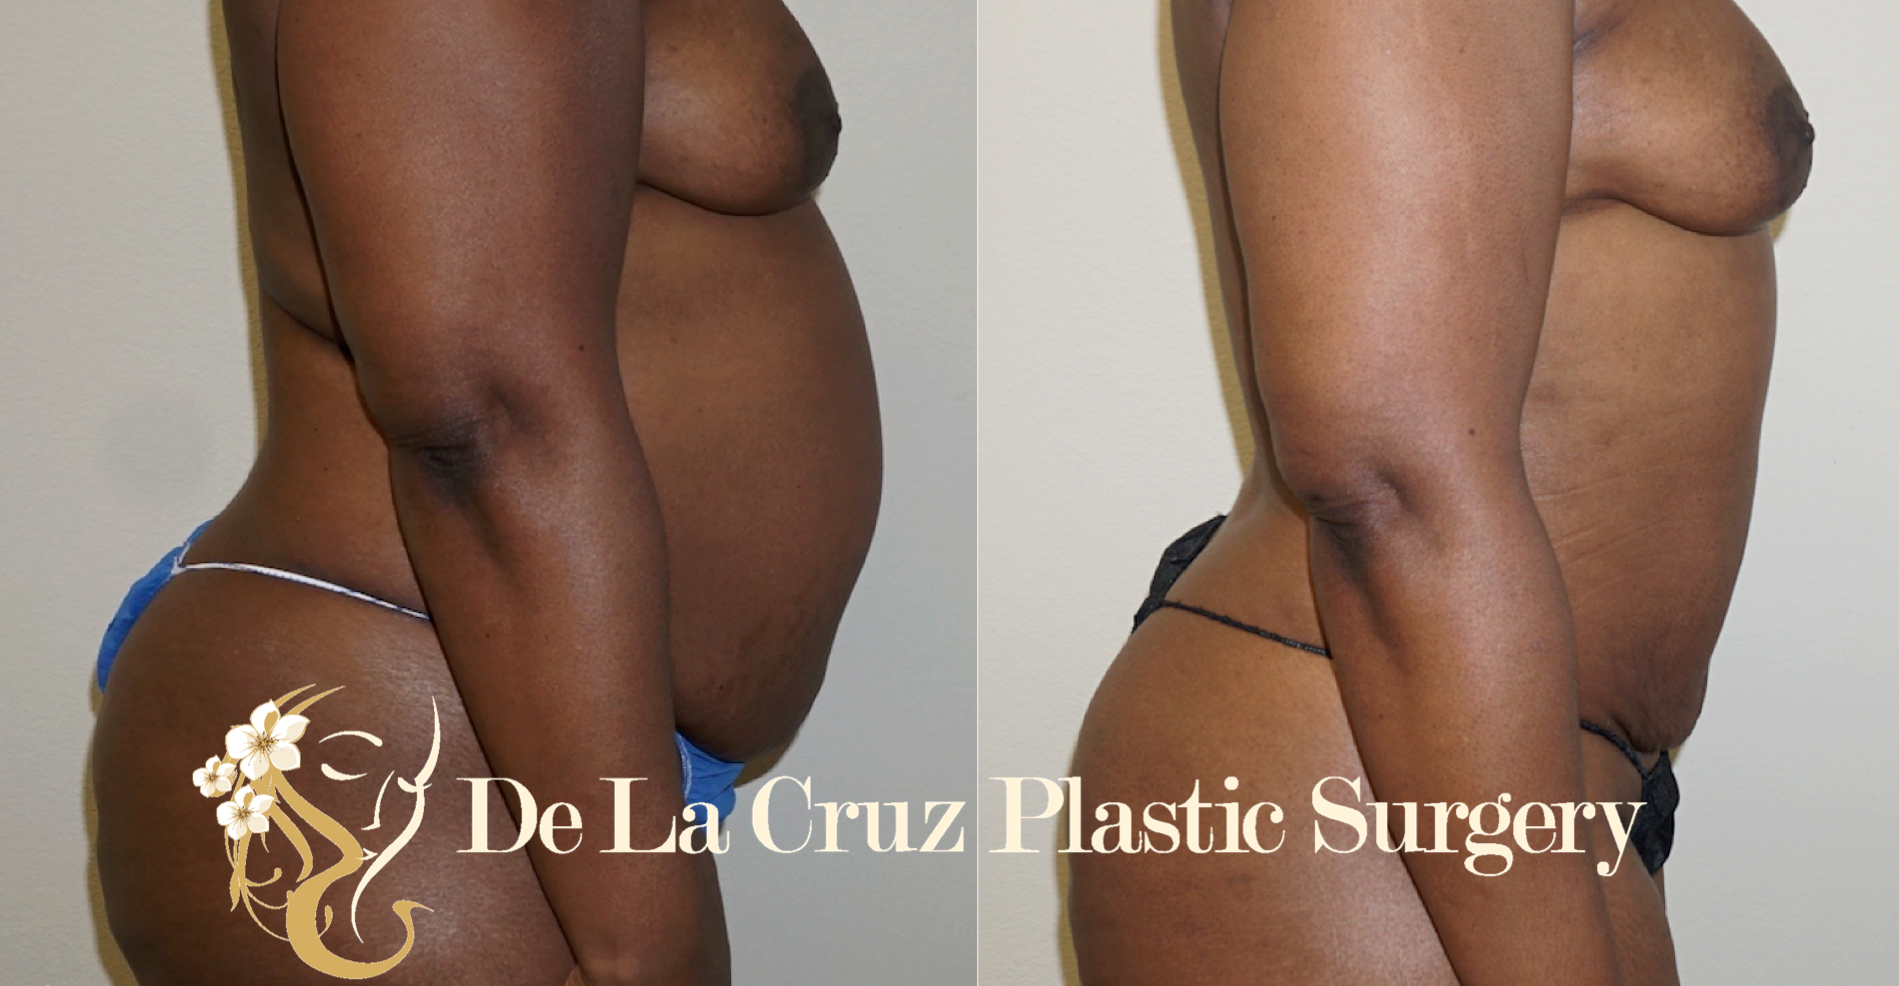 Figure 1:  Before and After Photos (3 months after surgery) after VASER  Hi-Definition Liposuction  performed by Dr. De La Cruz.  Note that there was significant skin retraction after surgery.